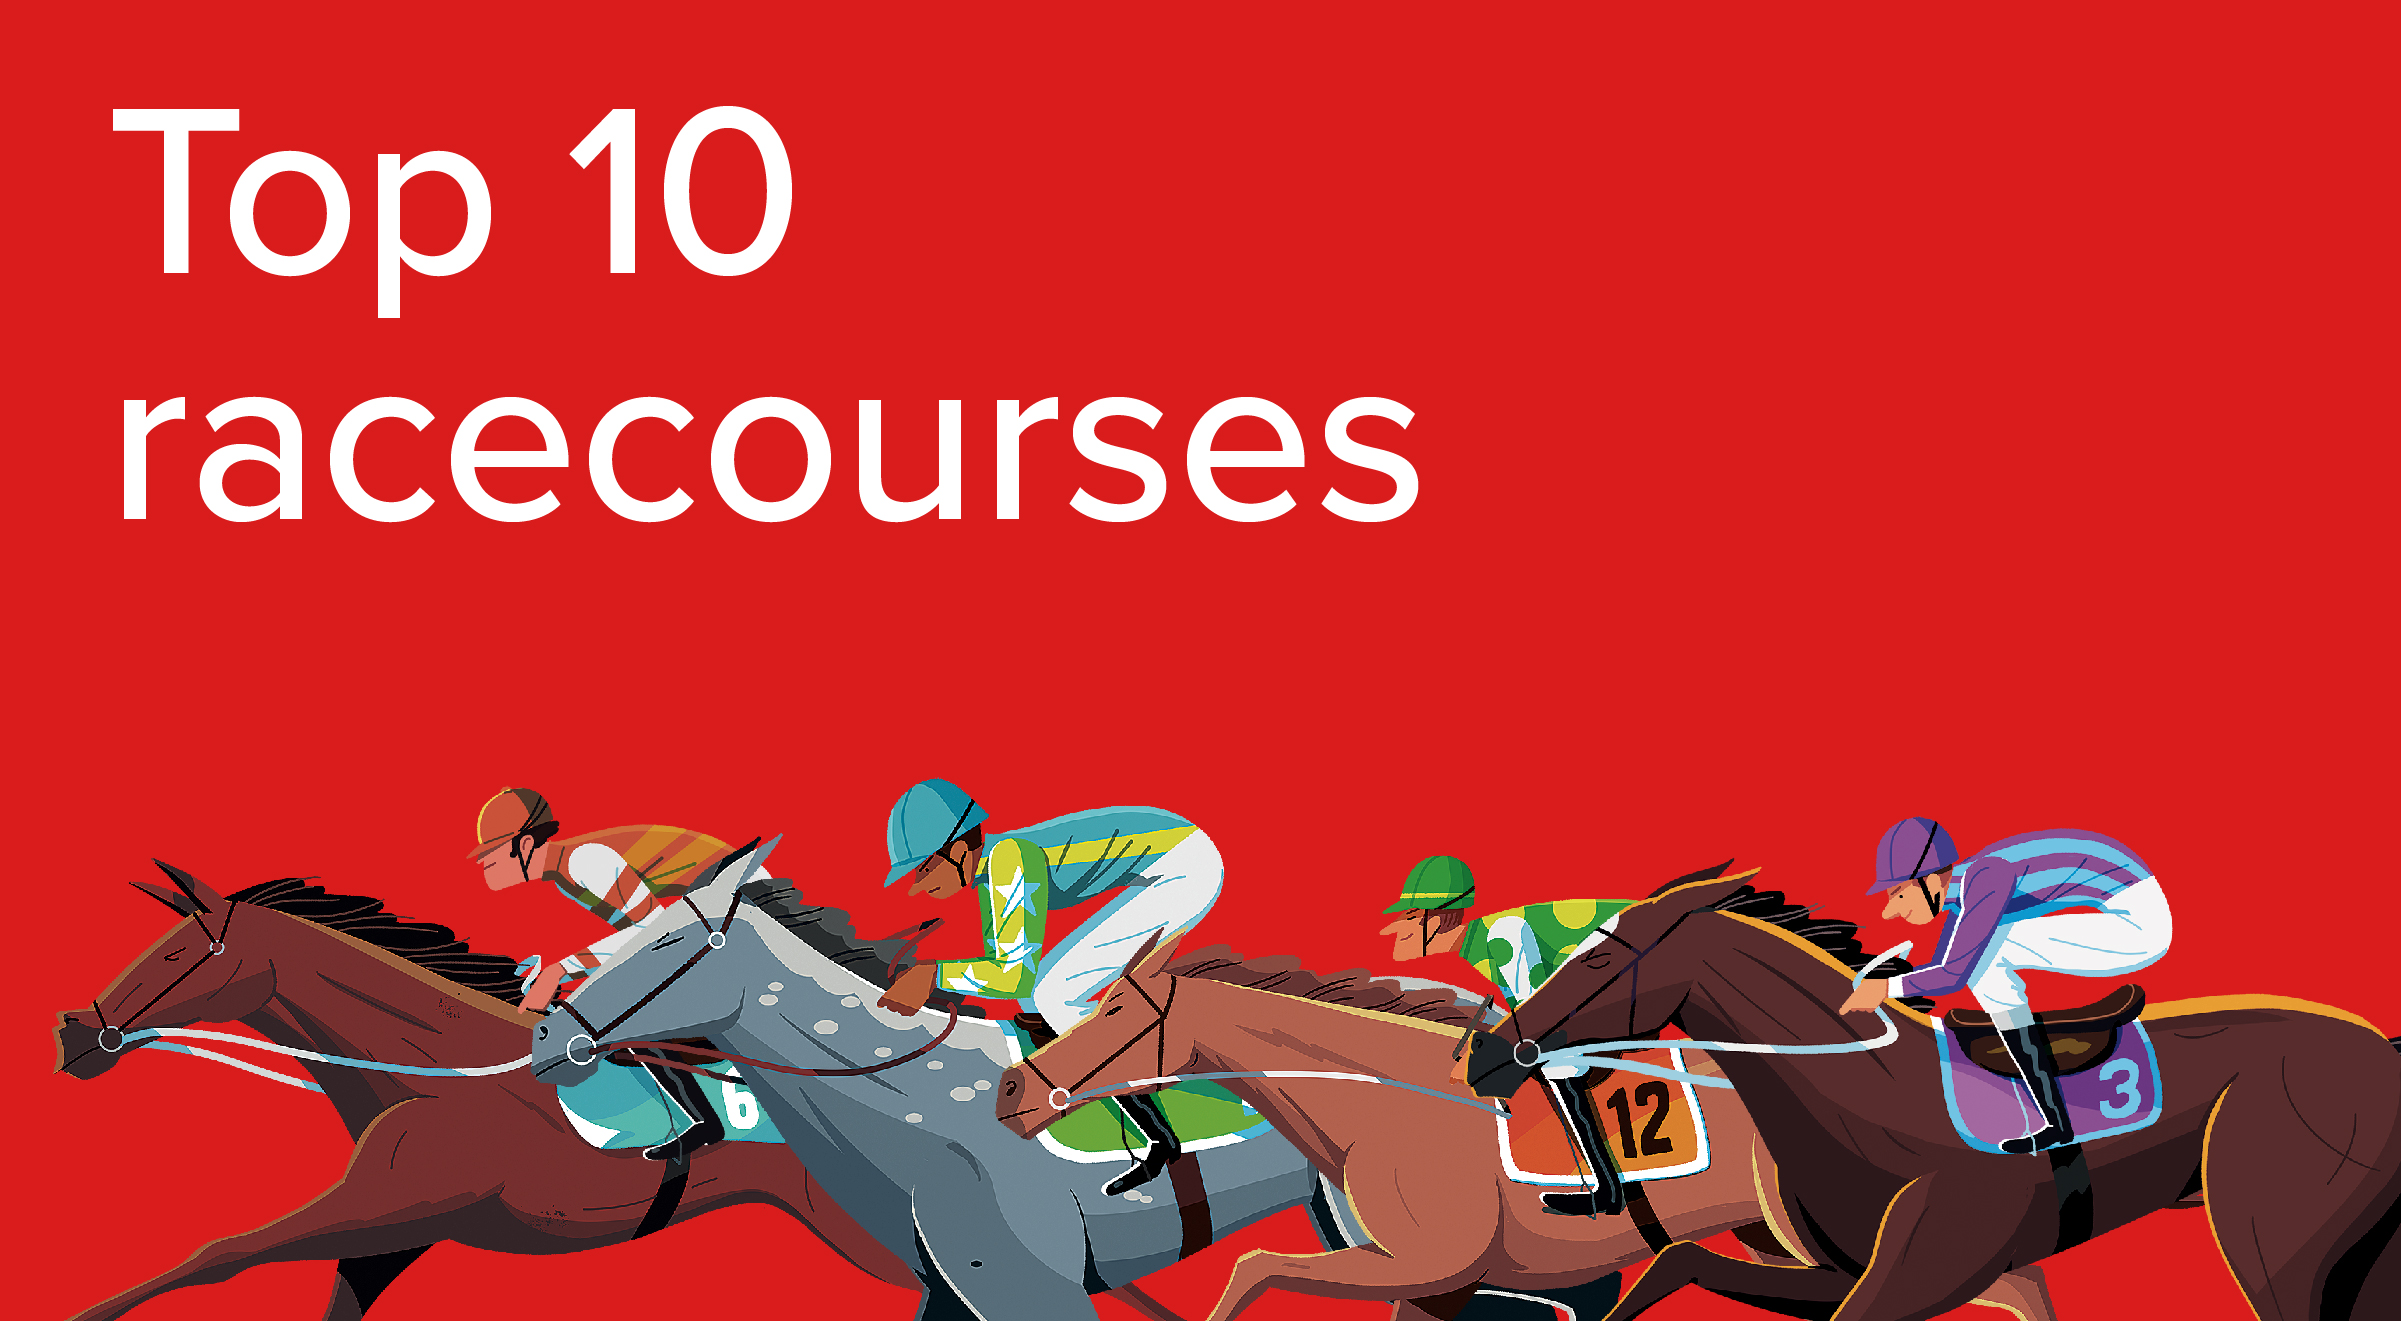 Racecourses Archives - Guide to Horse Racing f7c128d6a86a